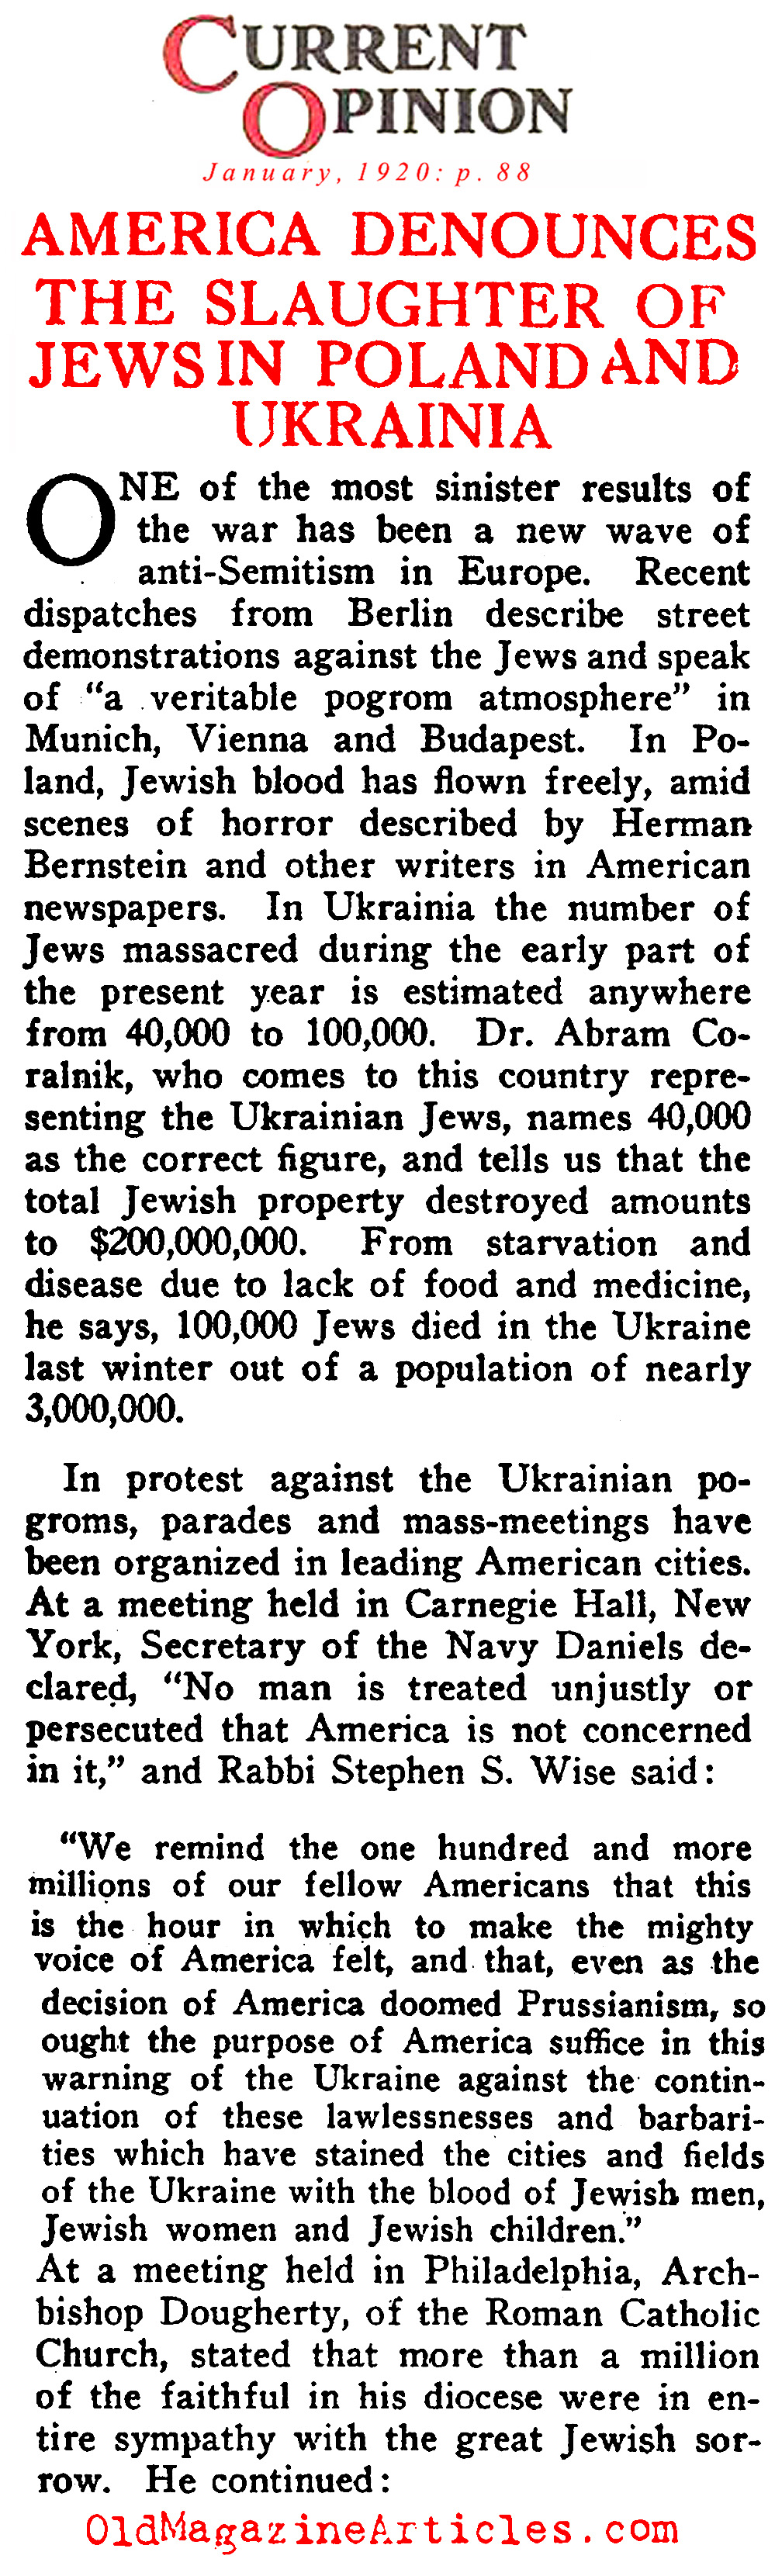 Eastern European Jews Slaughtered (Current Opinion, 1920)